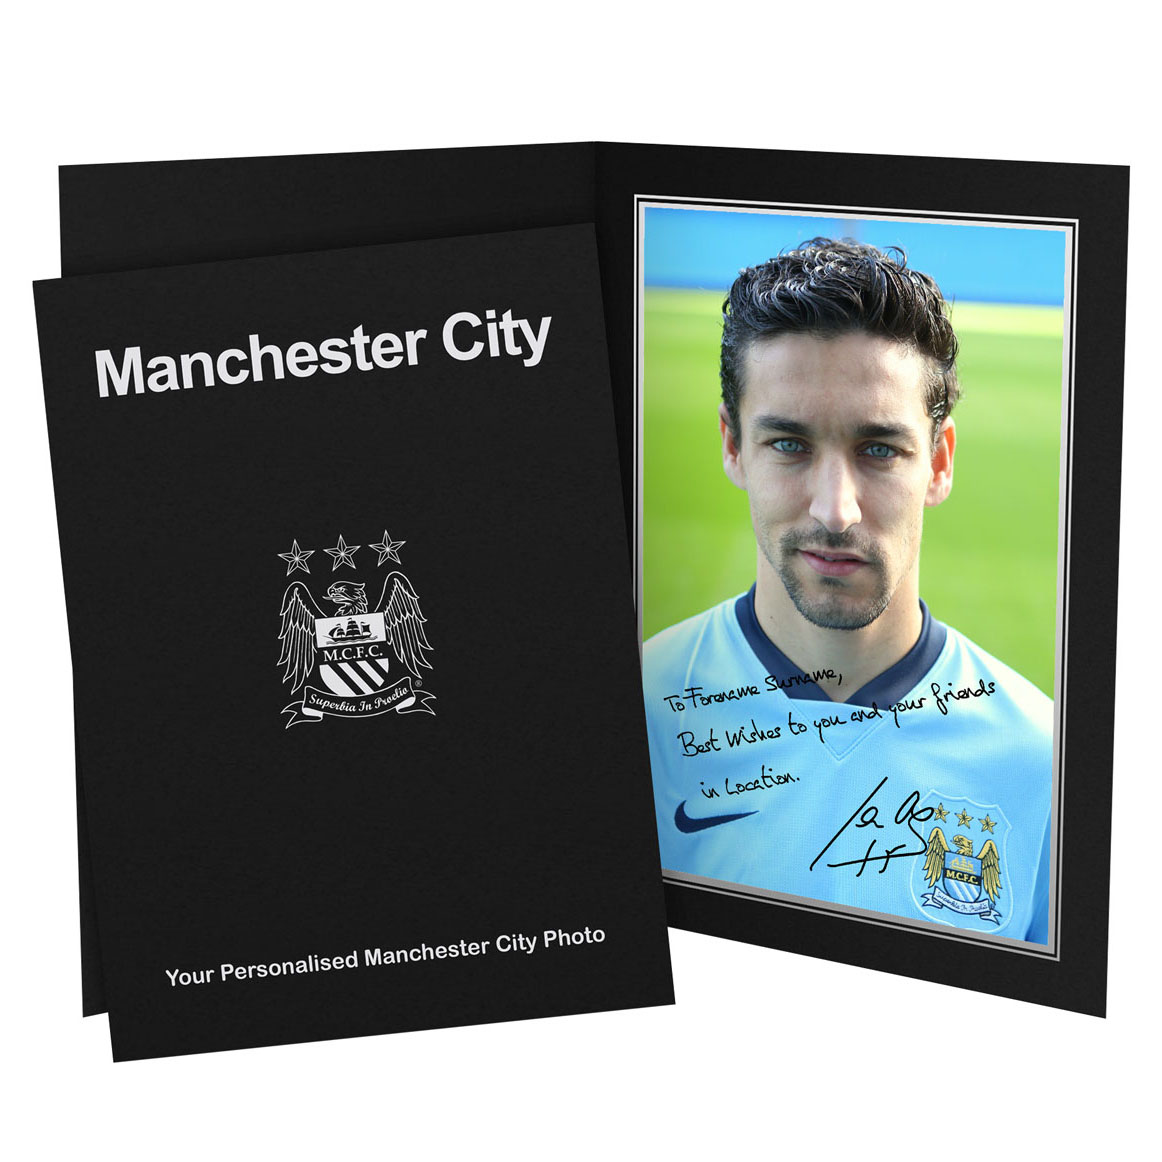 Manchester City Personalised Signature Photo in Presentation Folder - Navas